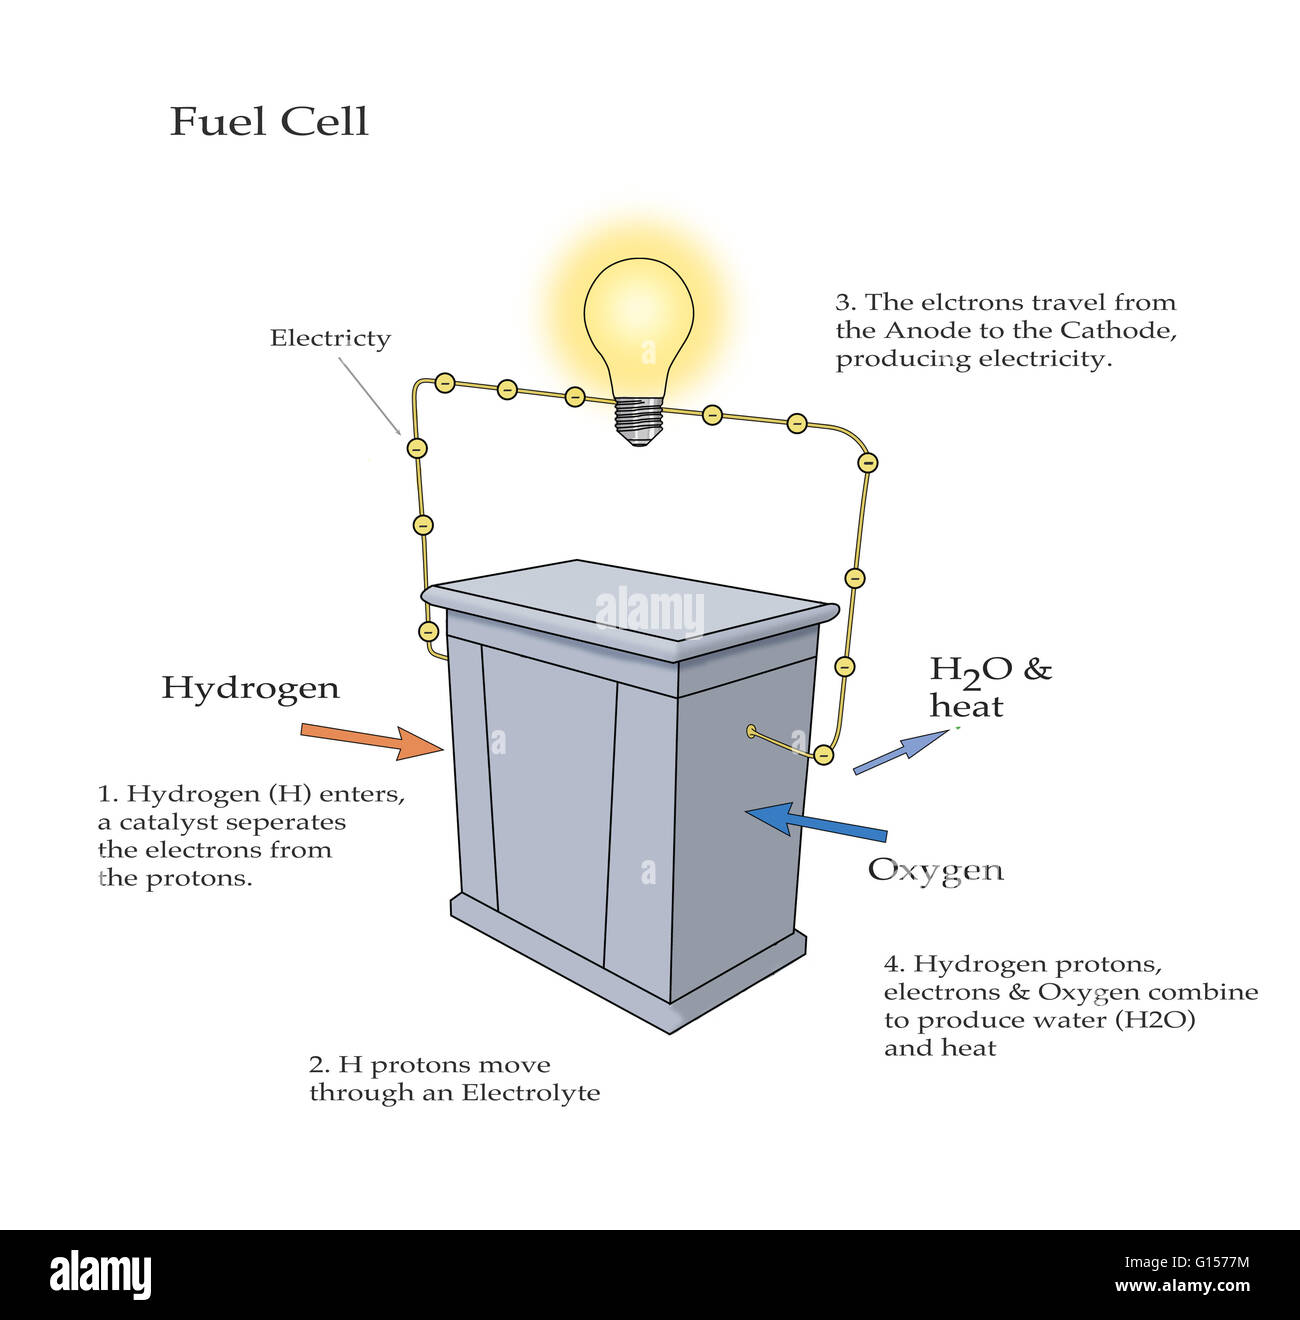 hydrogen fuel cell essay Hydrogen fuel cell partnership -  [1][2] presently cafcp is illustrating fuel cell  electric vehicles in california, along with the fueling stations to cater to the fuel.